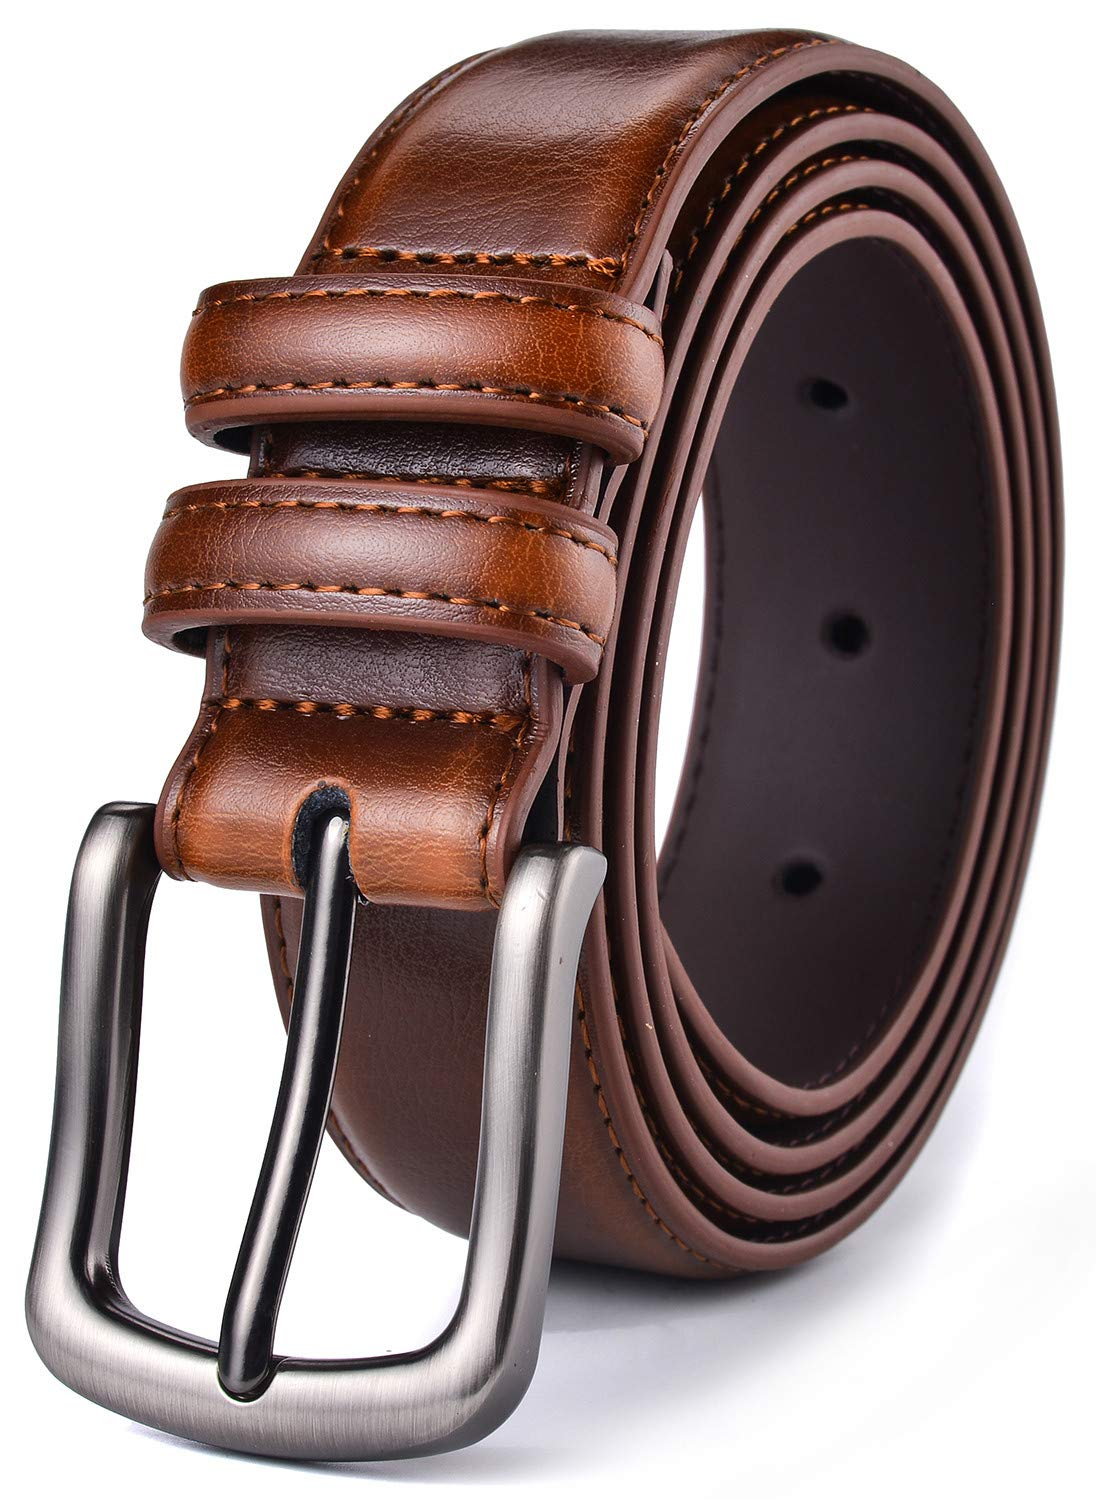 Mens Belt, HW Zone Genuine Leather Dress Belt Classic Casual 1 1/8 Wide Belt With Single Prong Buckle